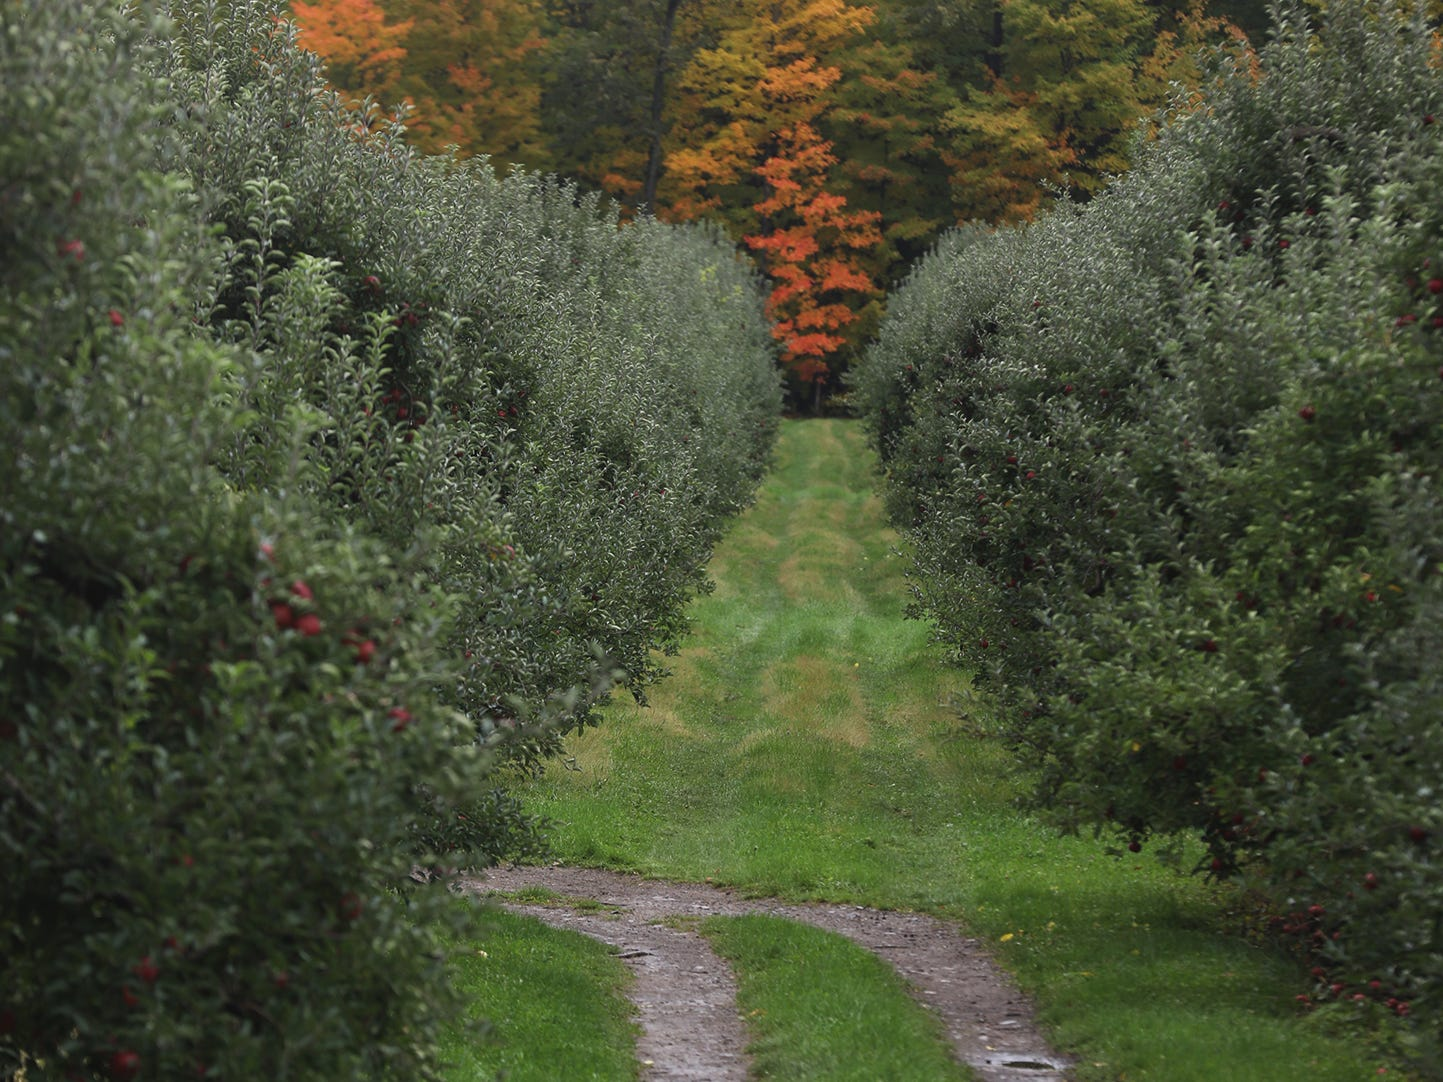 Sodus is a small rural community in Wayne County.  Orchard farmers are busy harvesting their apples.